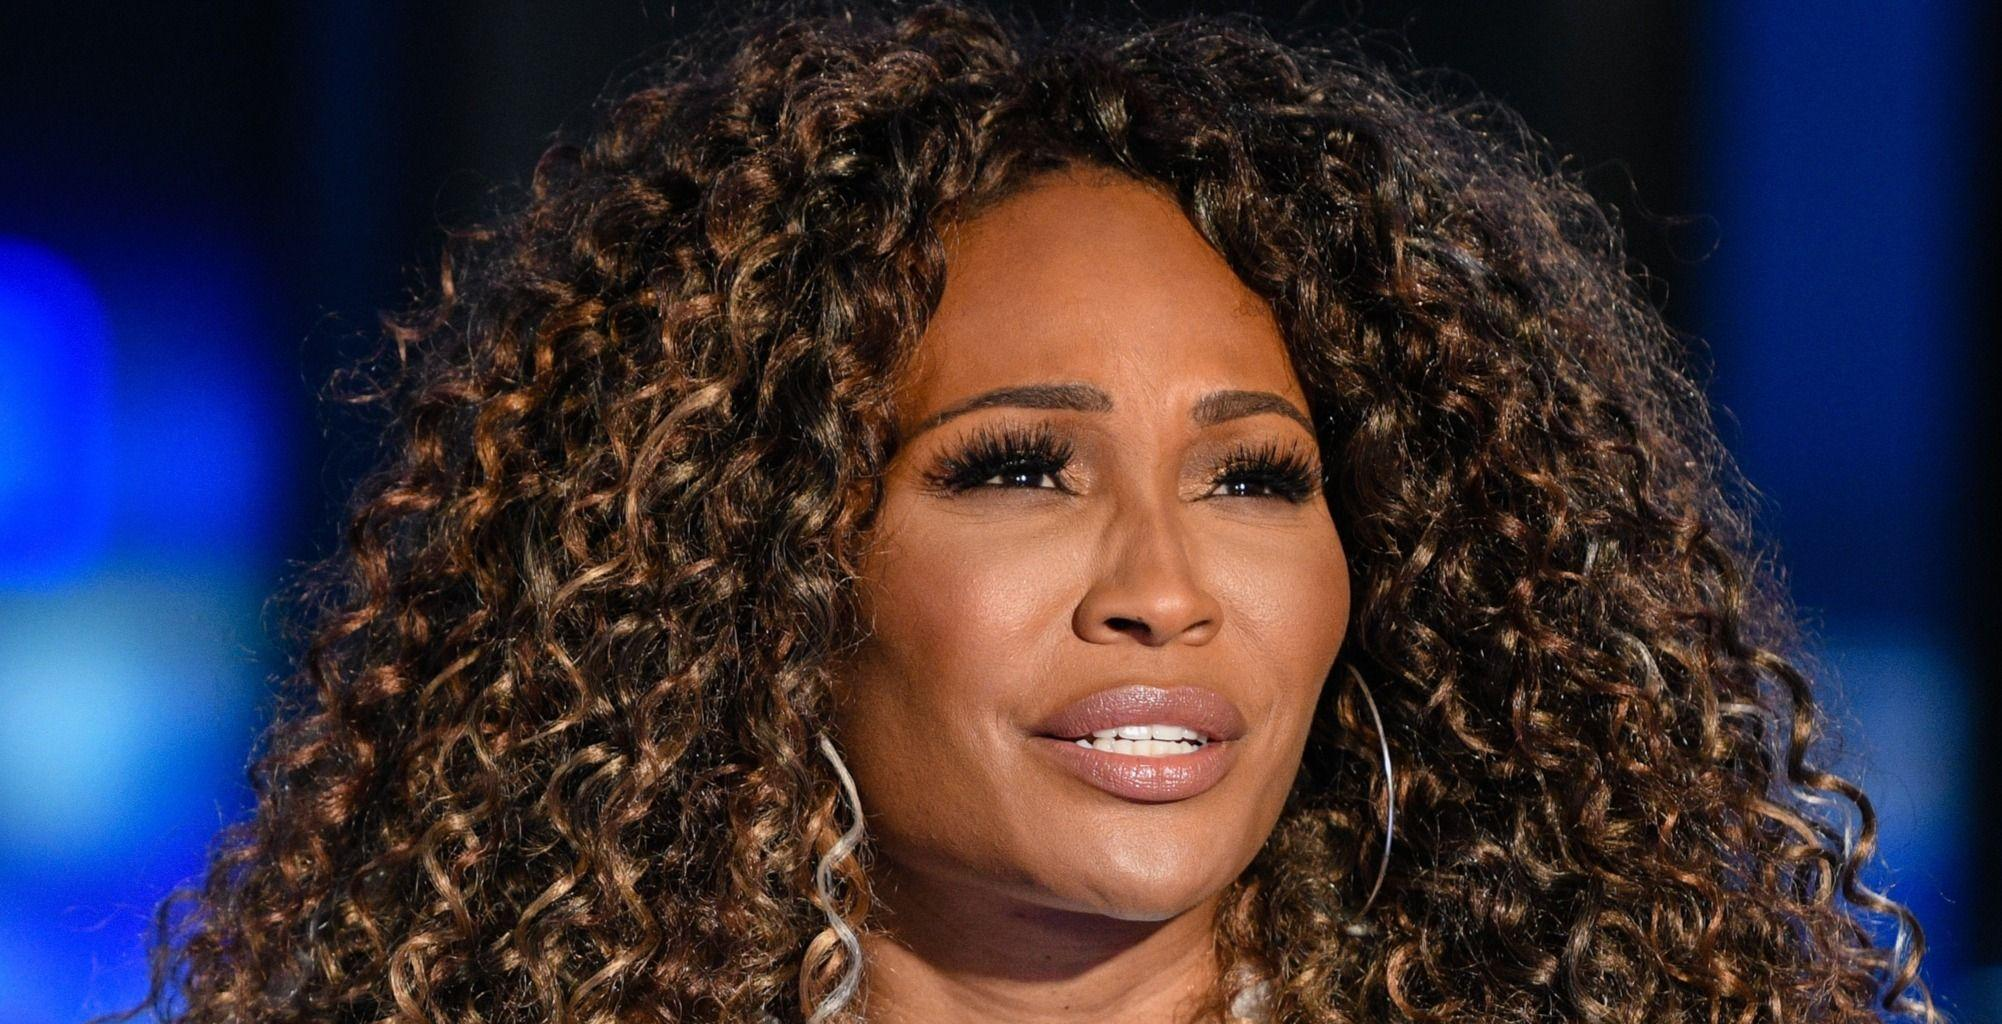 Cynthia Bailey Tells Fans That Home Is Where The Heart Is